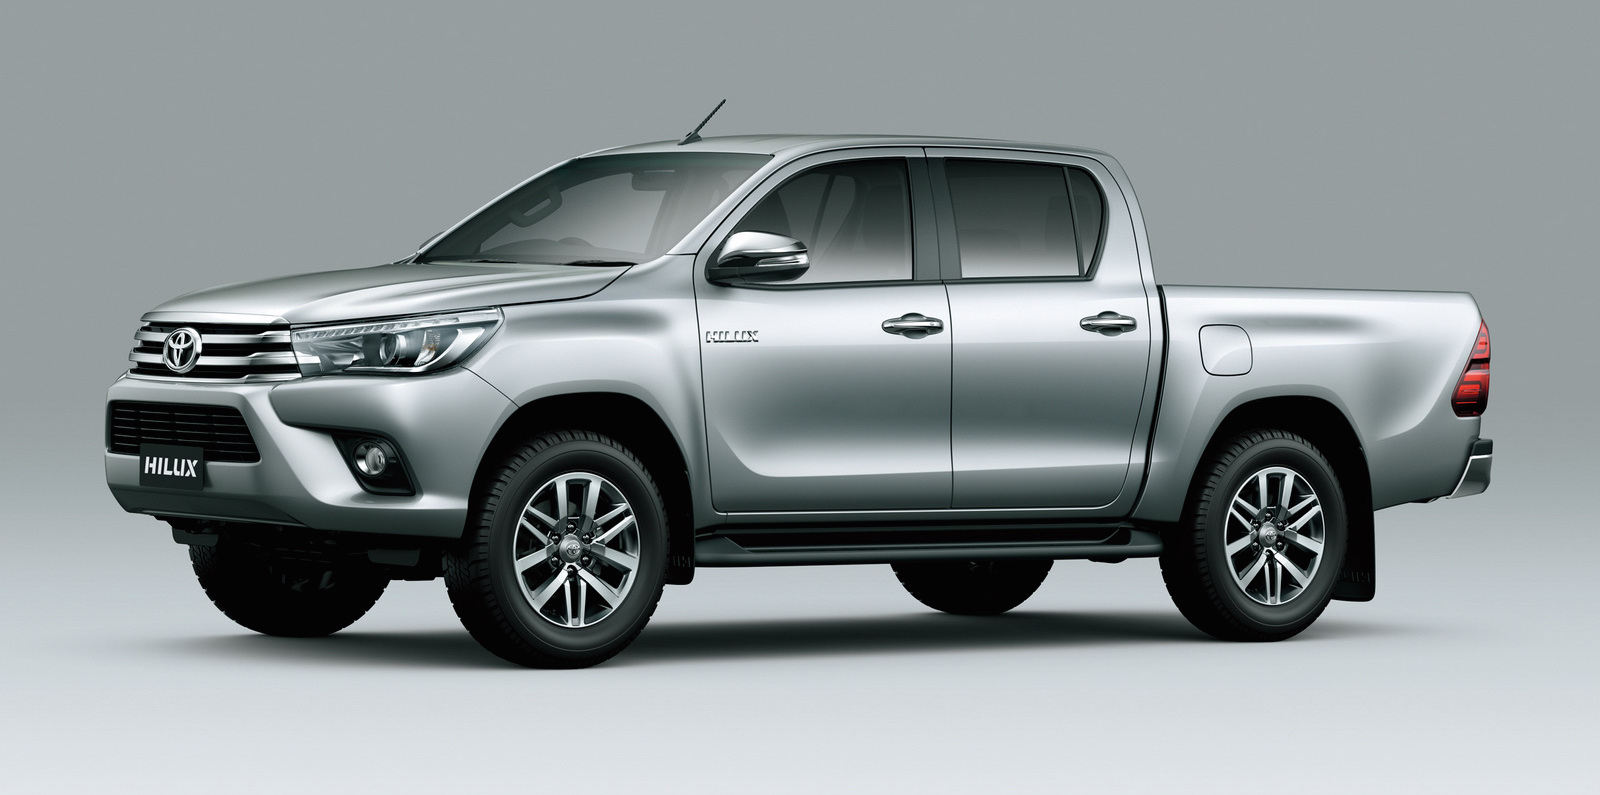 2016-toyota-hilux-double-cab-front-three-quarter-press-image